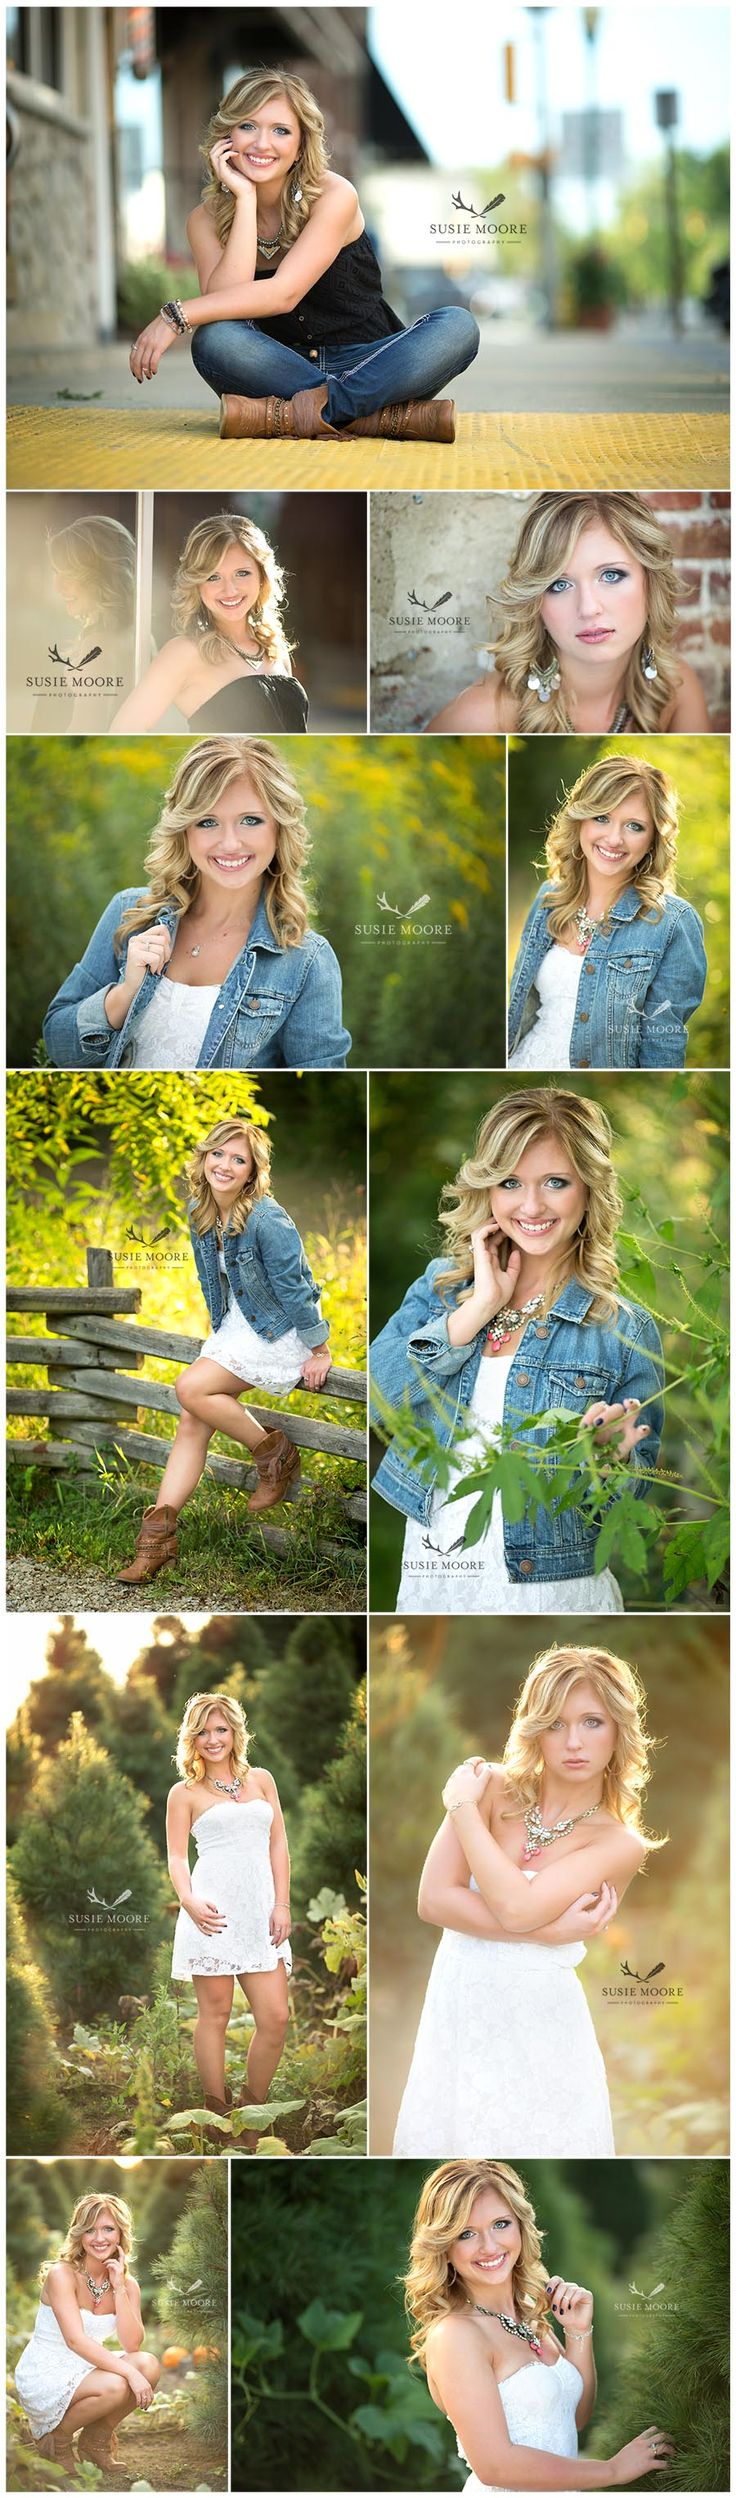 Senior Pictures- Indianapolis Senior Photography- Susie Moore Photography- Katelyn